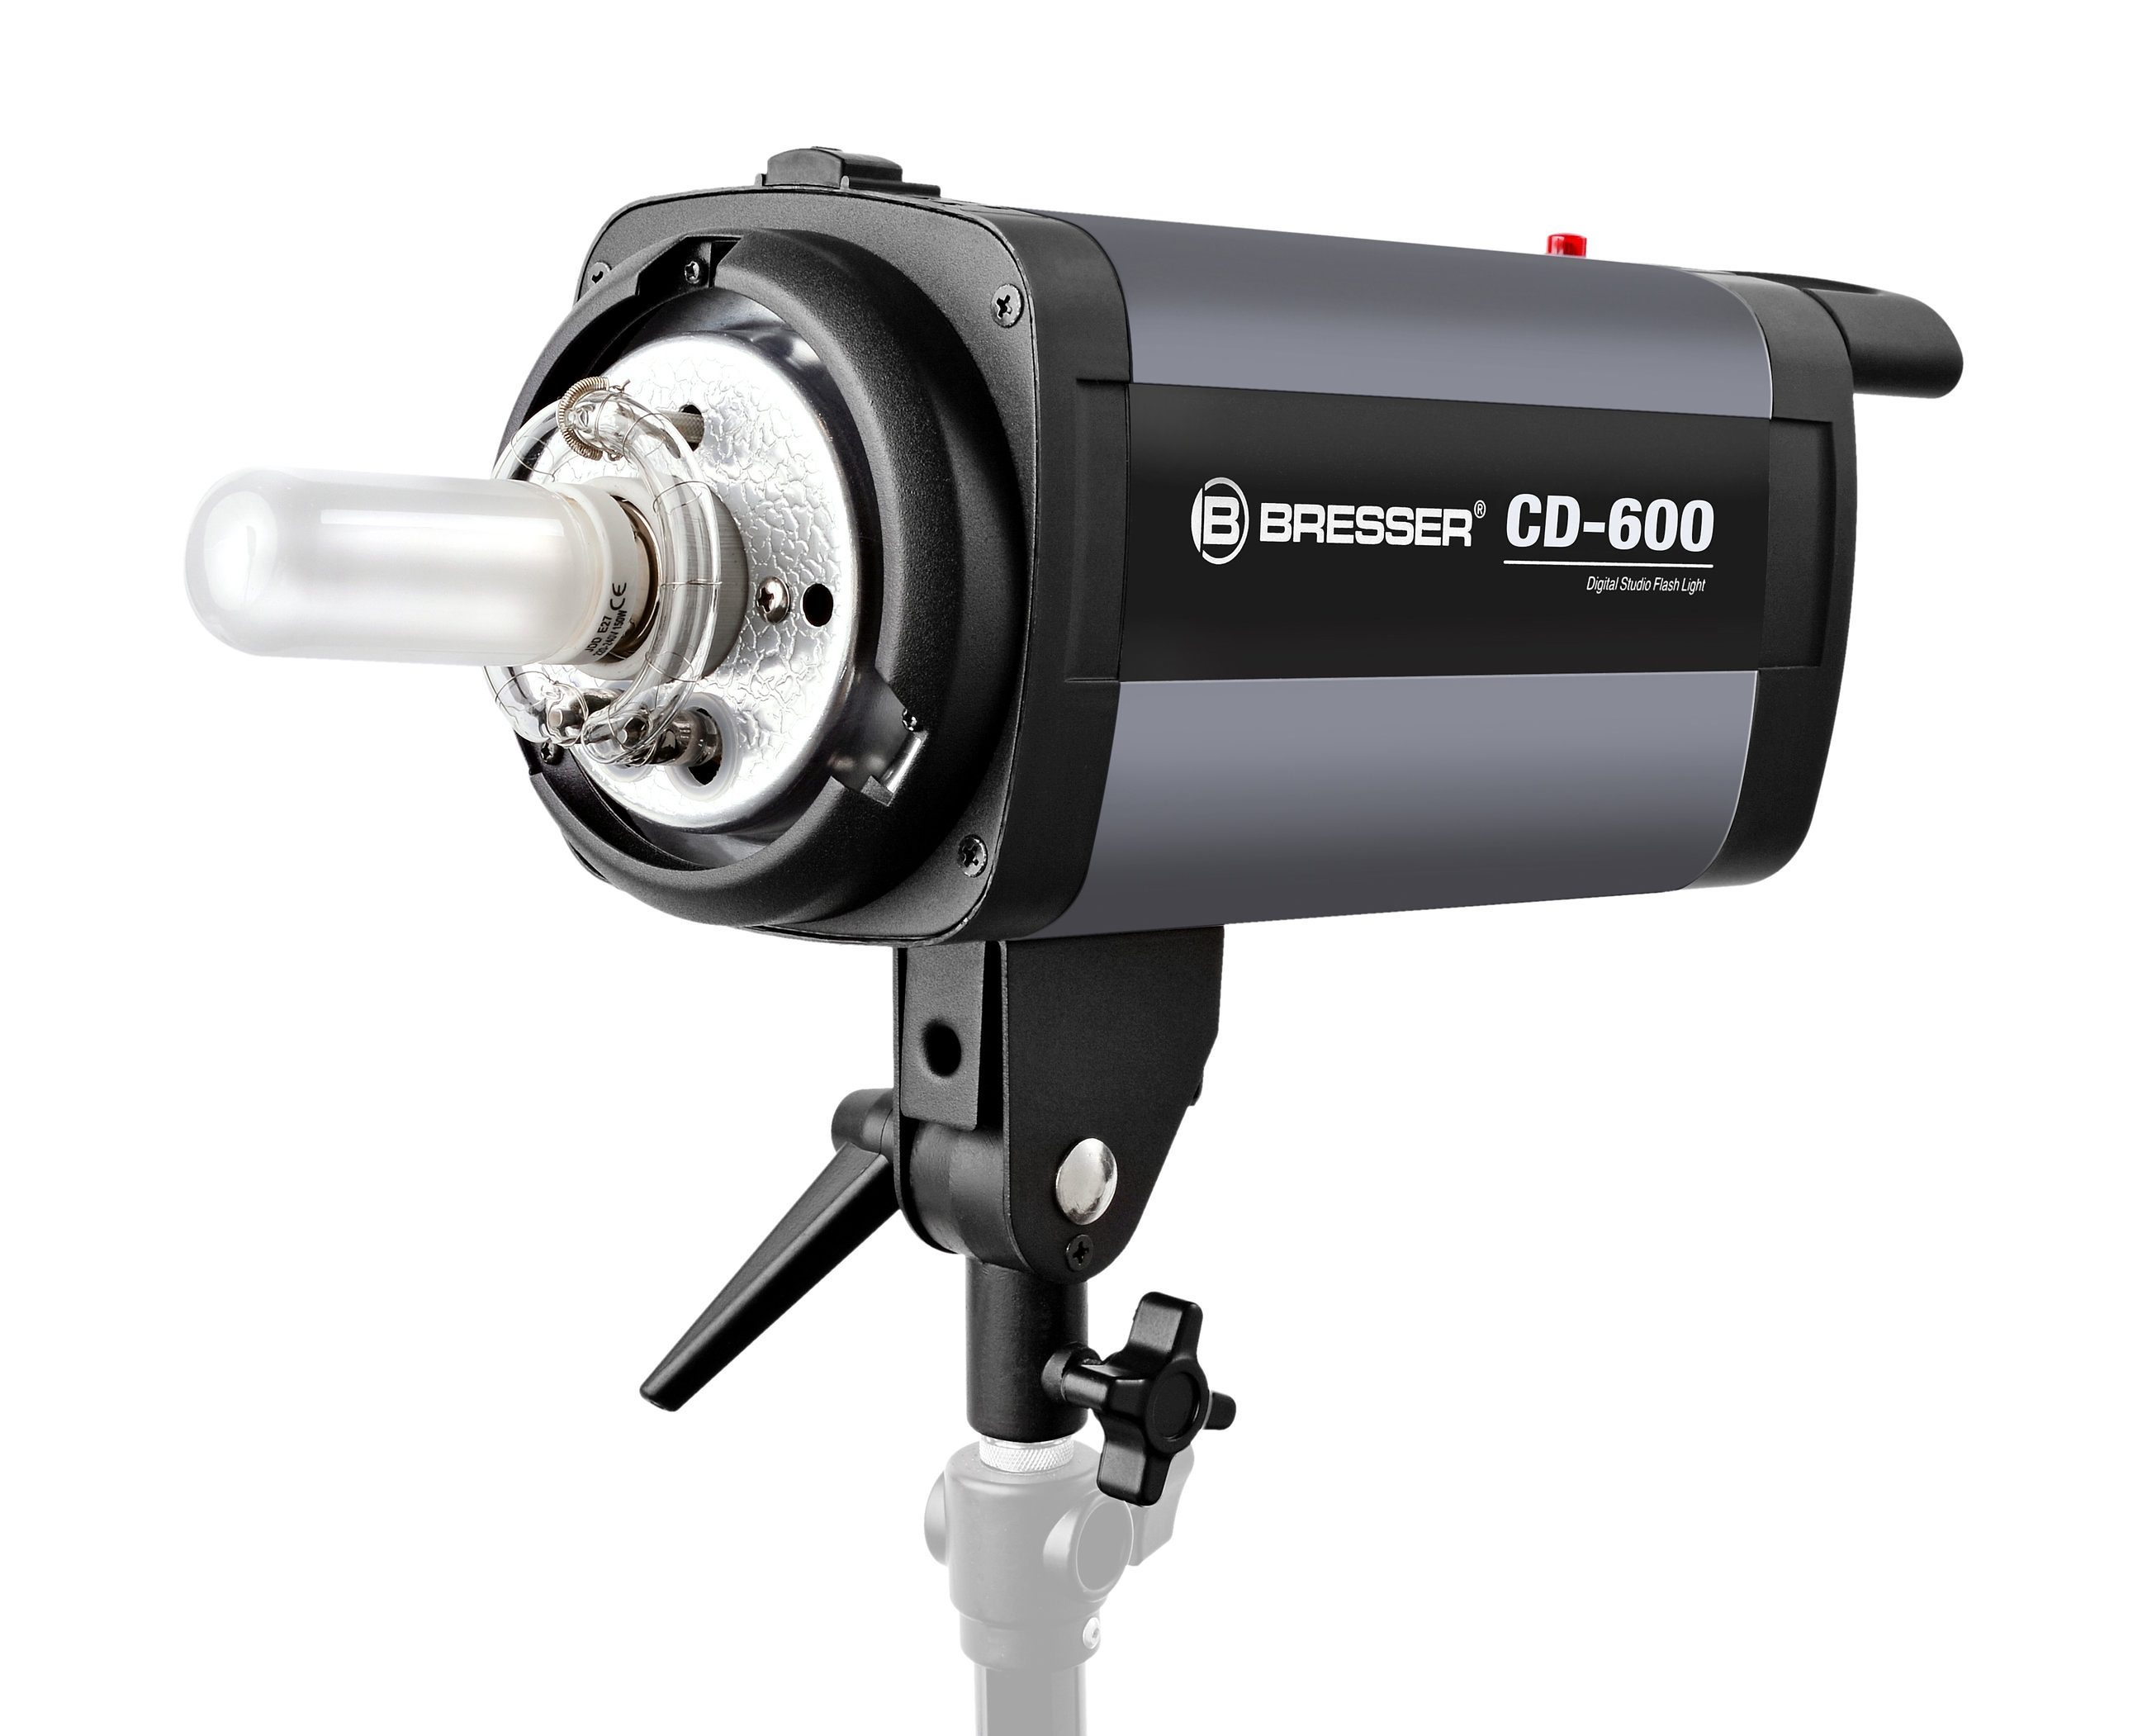 BRESSER Fotostudio »BRESSER CD-600 digitaler Studioblitz«